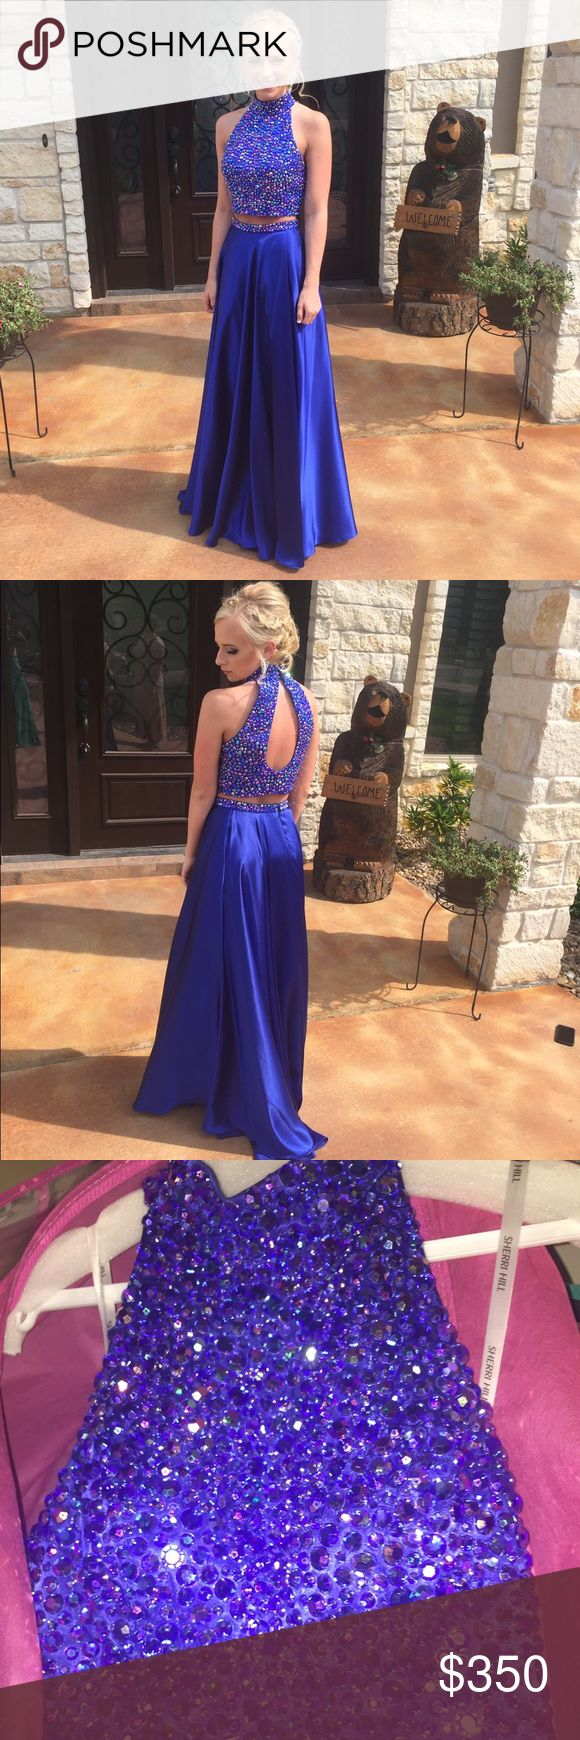 Sherri Hill Blue Two-Piece Prom Dress Only worn once, in great condition, definitely stands out with the Royal Blue/ Indigo Blue color. By far my favorite prom dress out of all 4 years!! I'm willing to negotiate the price :) Sherri Hill Dresses Prom